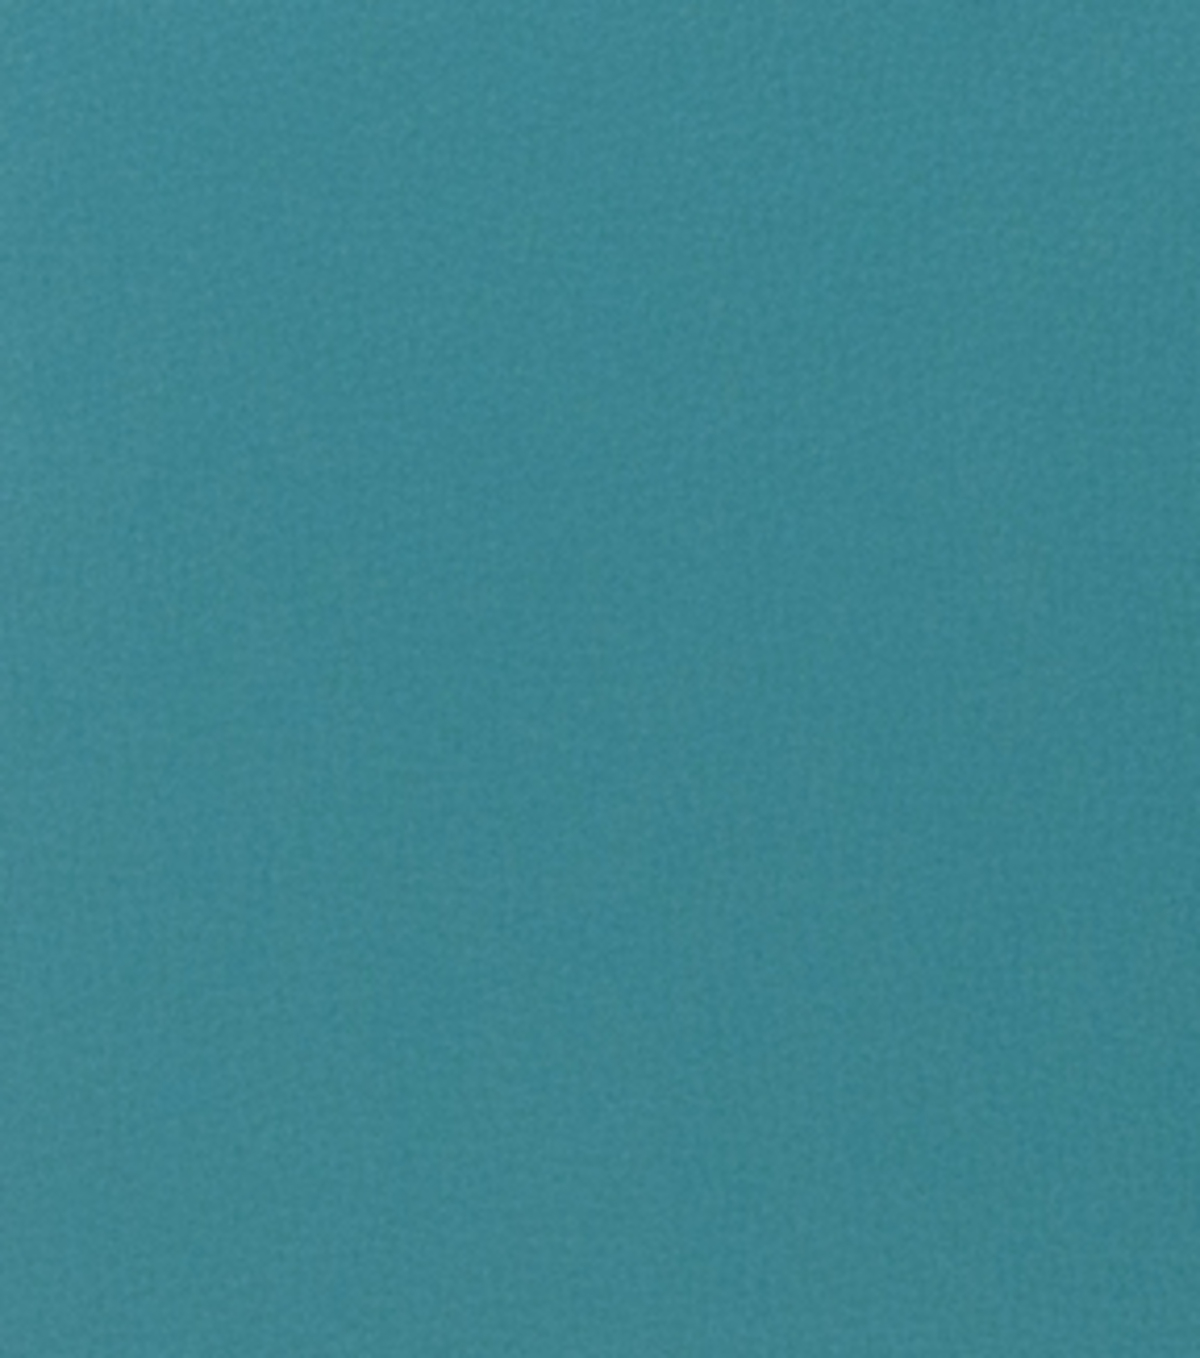 Home Decor 8\u0022x8\u0022 Fabric Swatch-Signature Series Boyd Turquoise